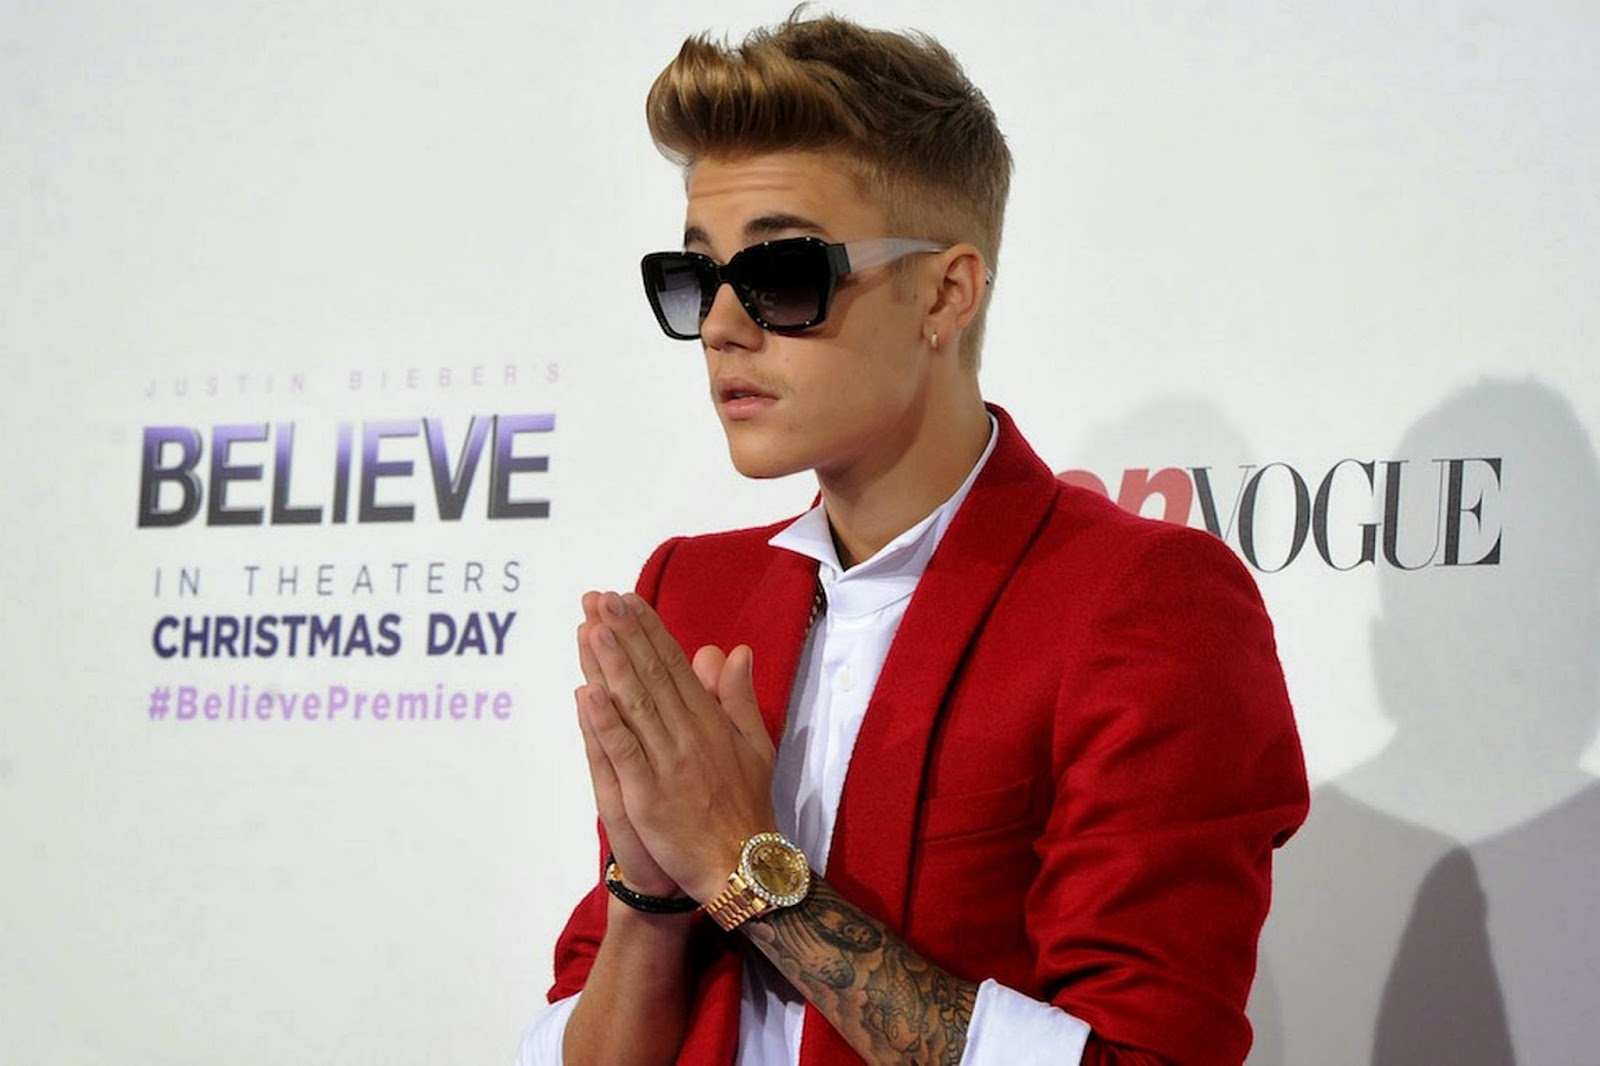 Justin Bieber hints at new album in 2015